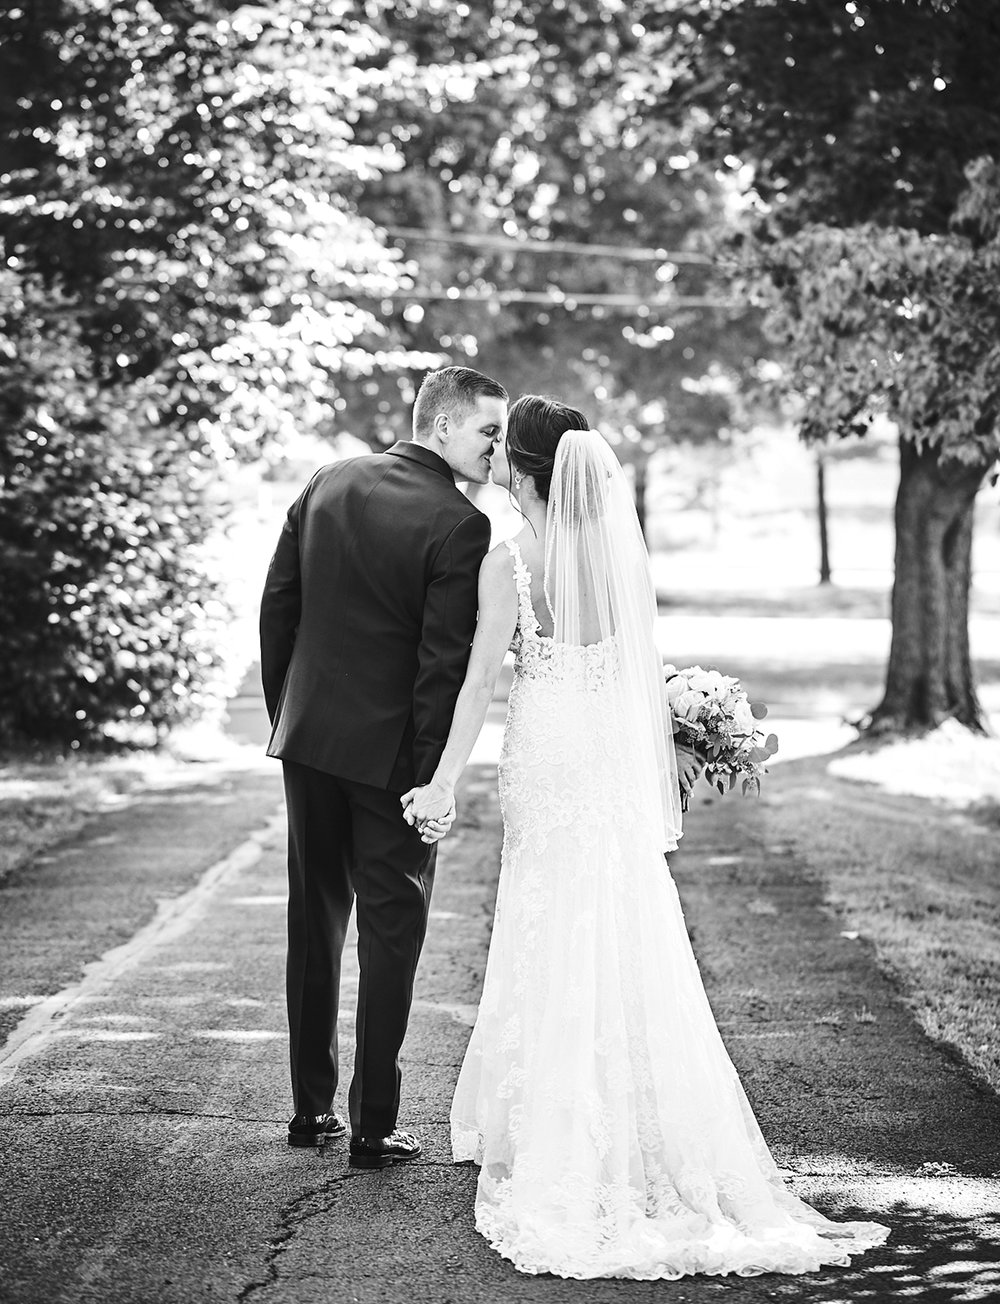 180915_TheRylandInnWeddingPhotography_StylishModernWeddingPhotography_NewJerseyWeddingPhotographer_by_BriJohnsonWeddings_0071.jpg